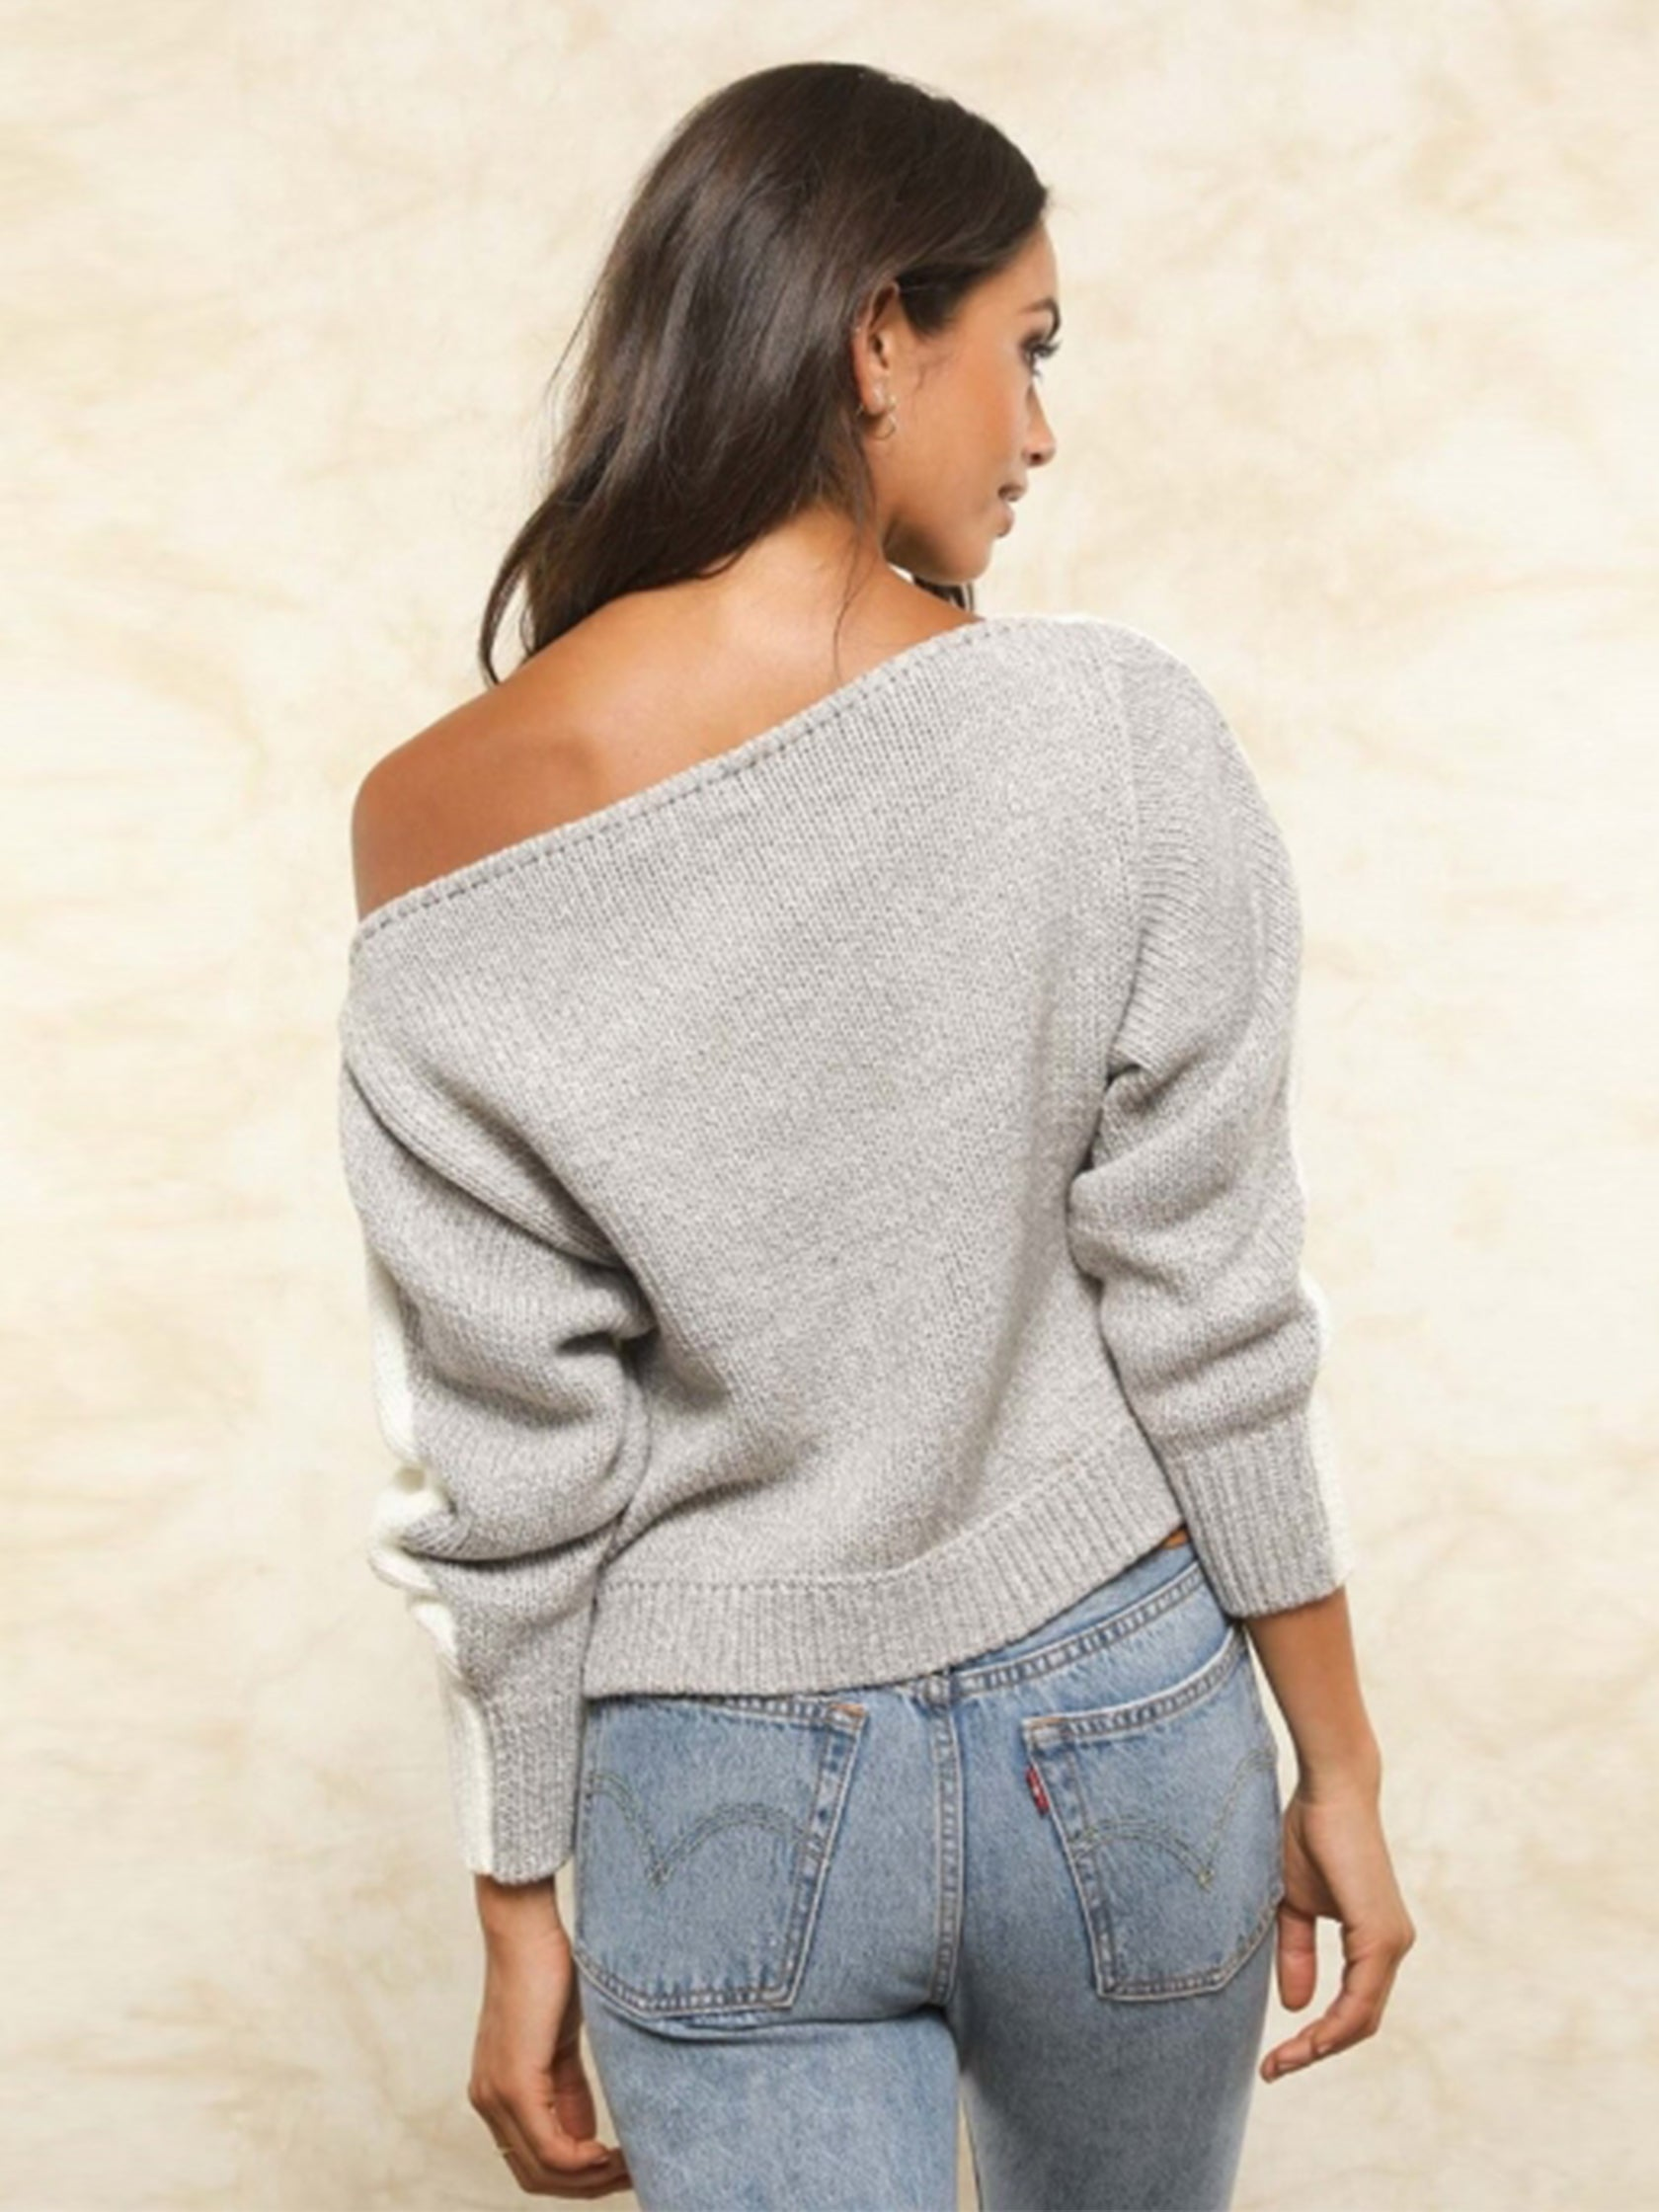 Girl wearing a sweater rental from FLETCH called Hannah Off Shoulder Reversible Sweater